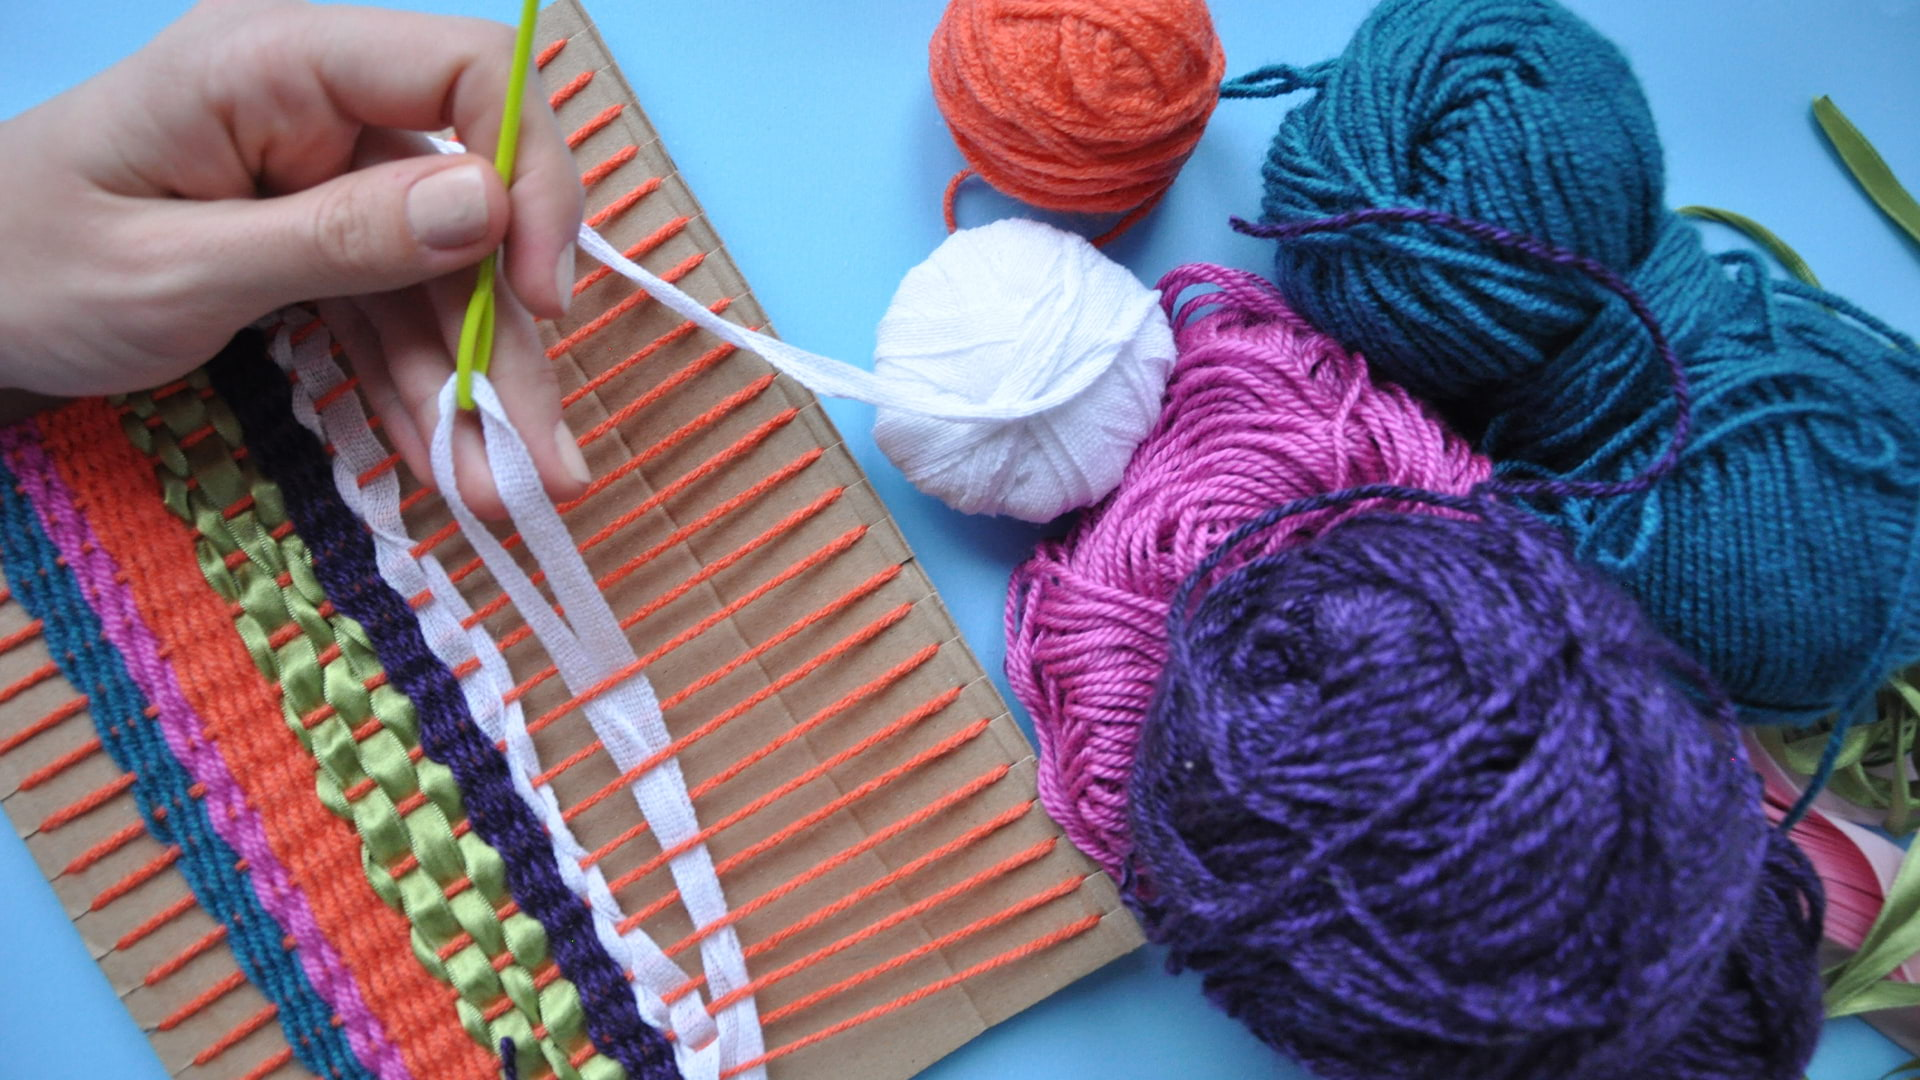 Weaving with Colorful Fabric